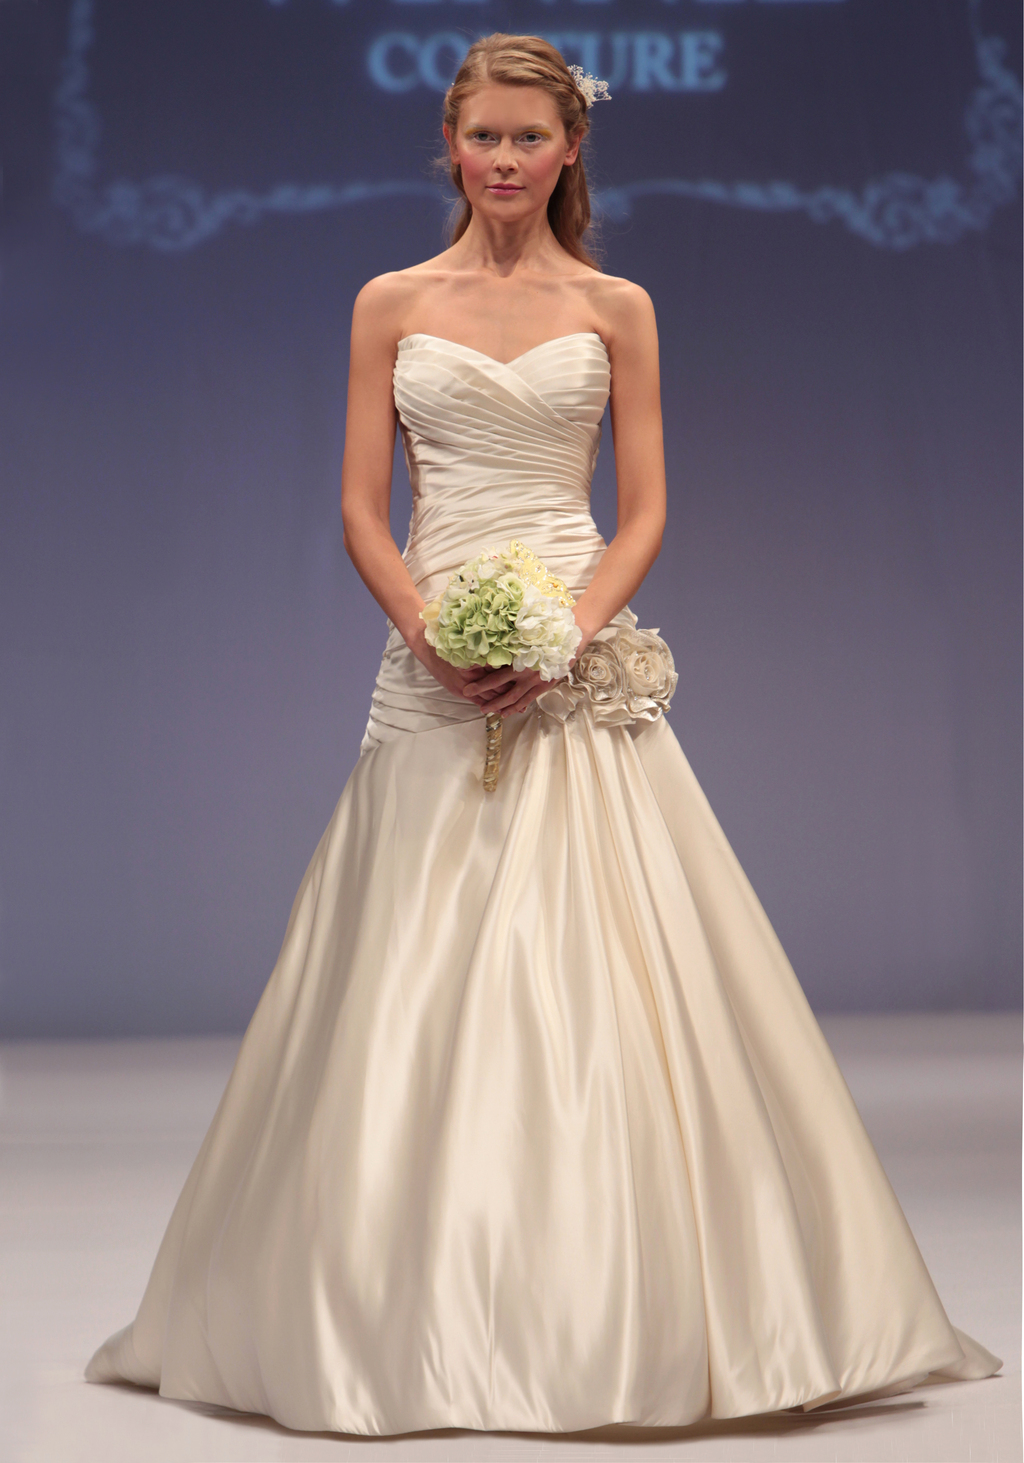 Winnie-couture-bridal-gown-spring-2013-wedding-dress-hester.full